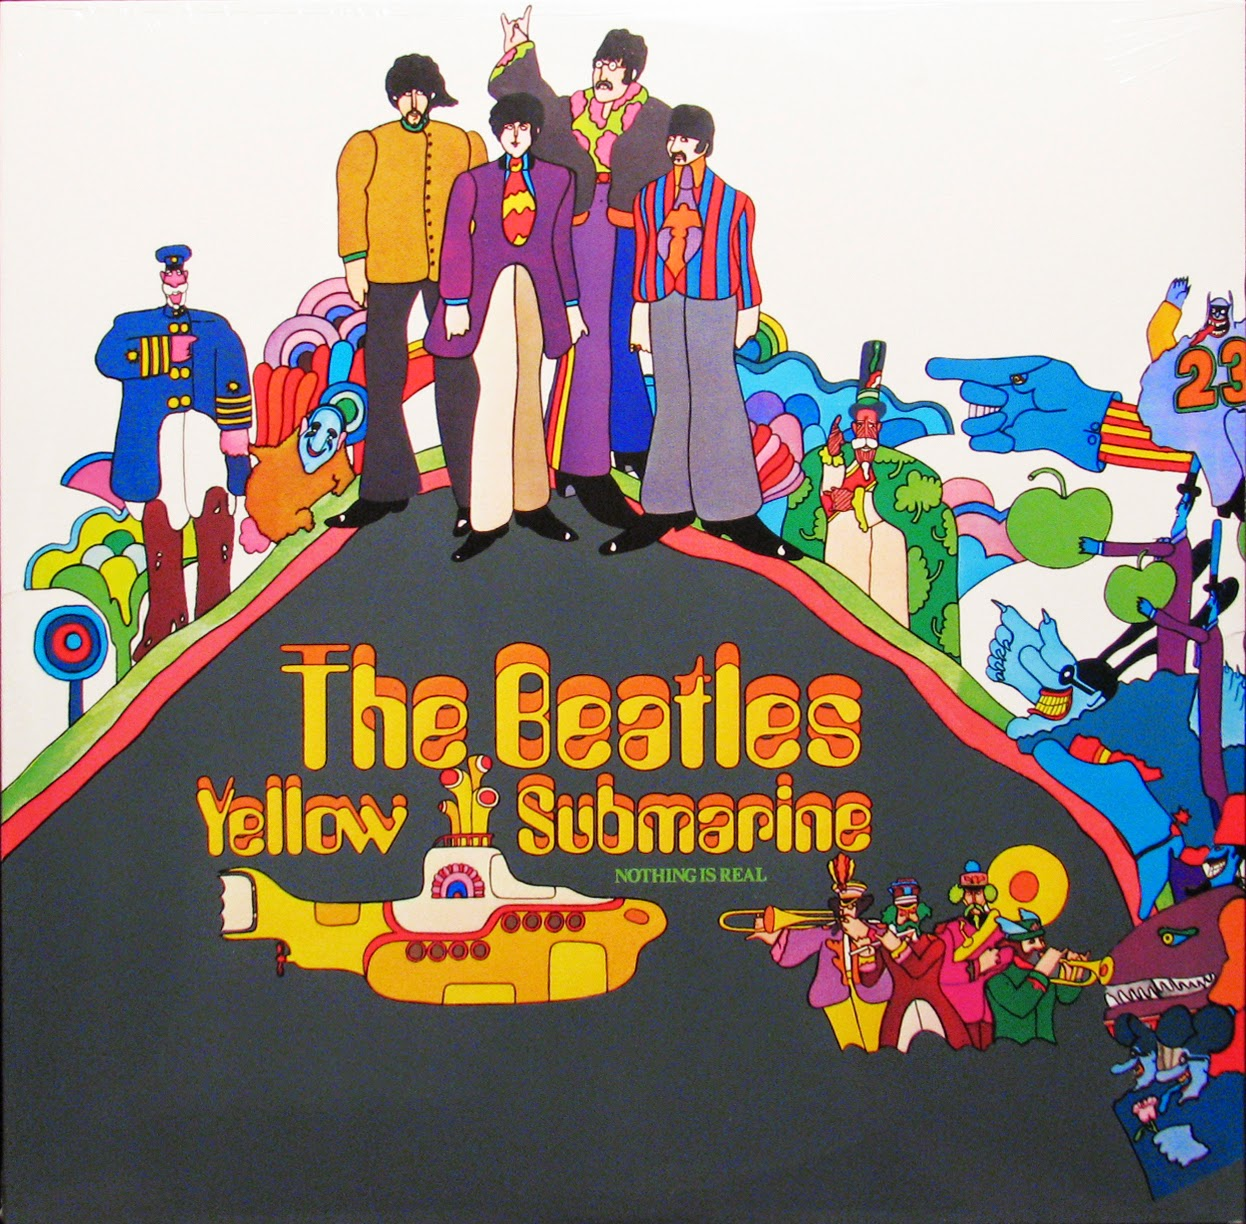 The Beatles - Hey Bulldog / All Together Now / It's All Too Much